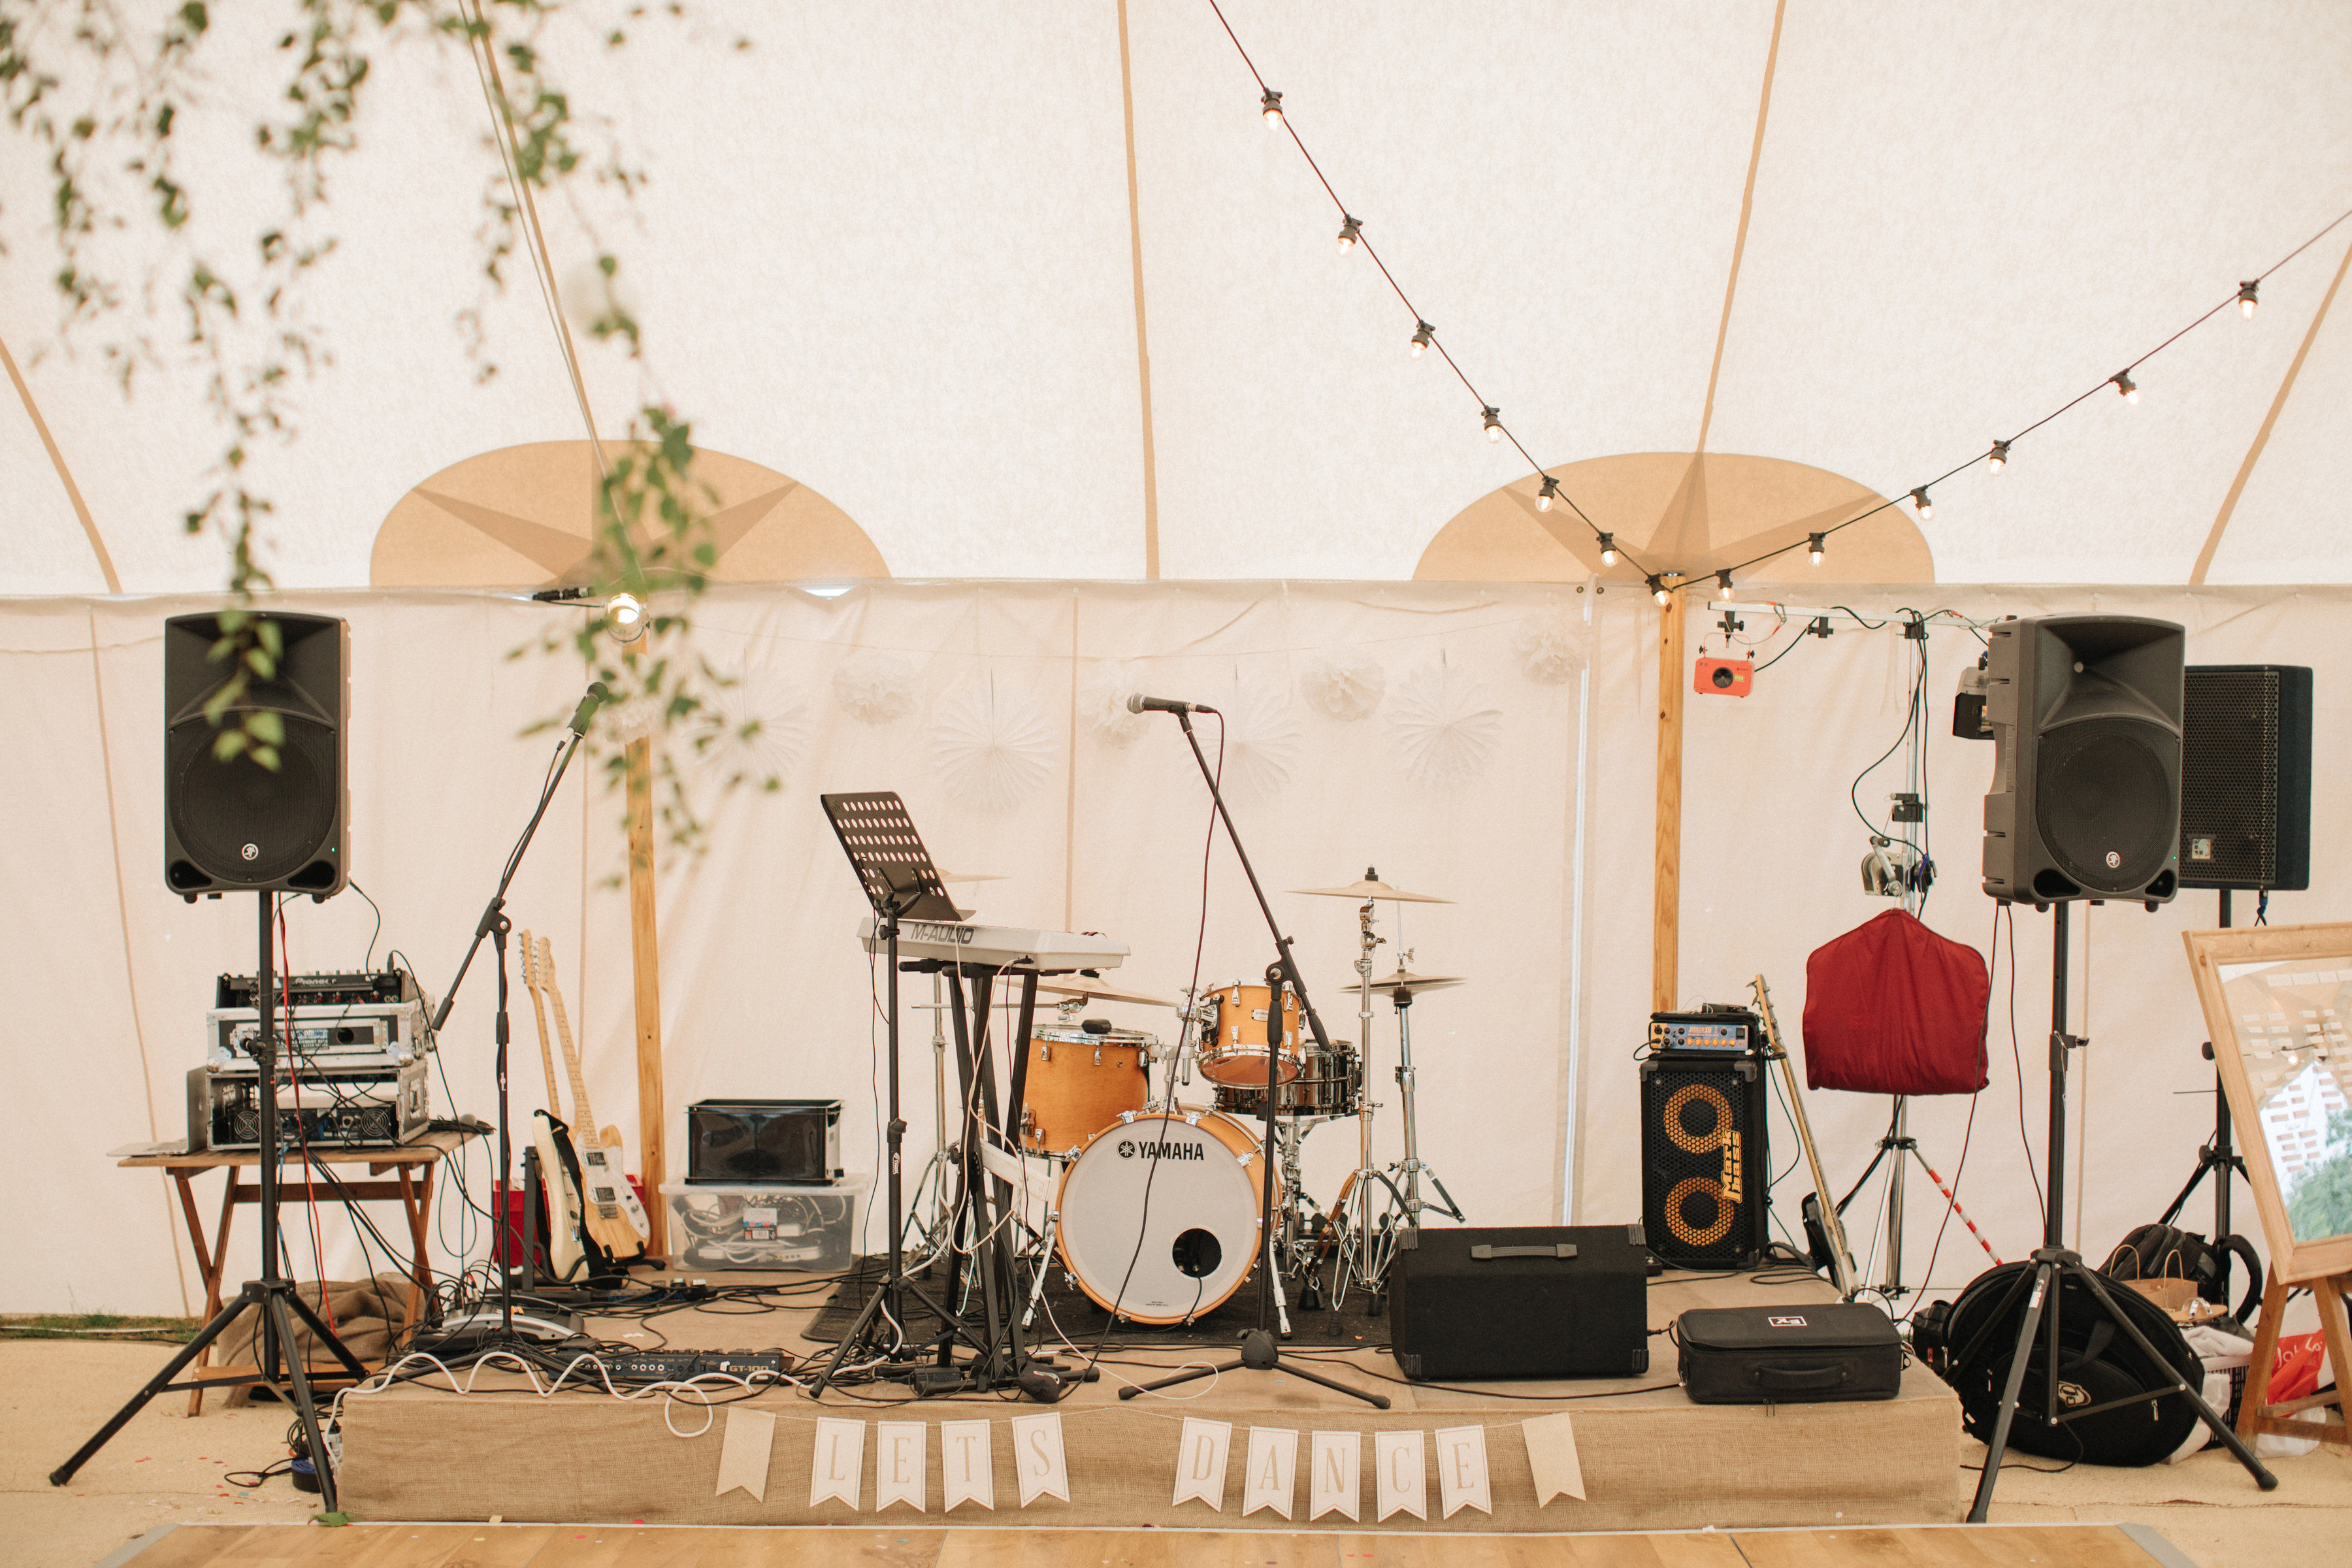 Steph & Ed's PapaKåta Sperry Tent wedding at home in Nottingham captured by M & J Photography: Wedding Band